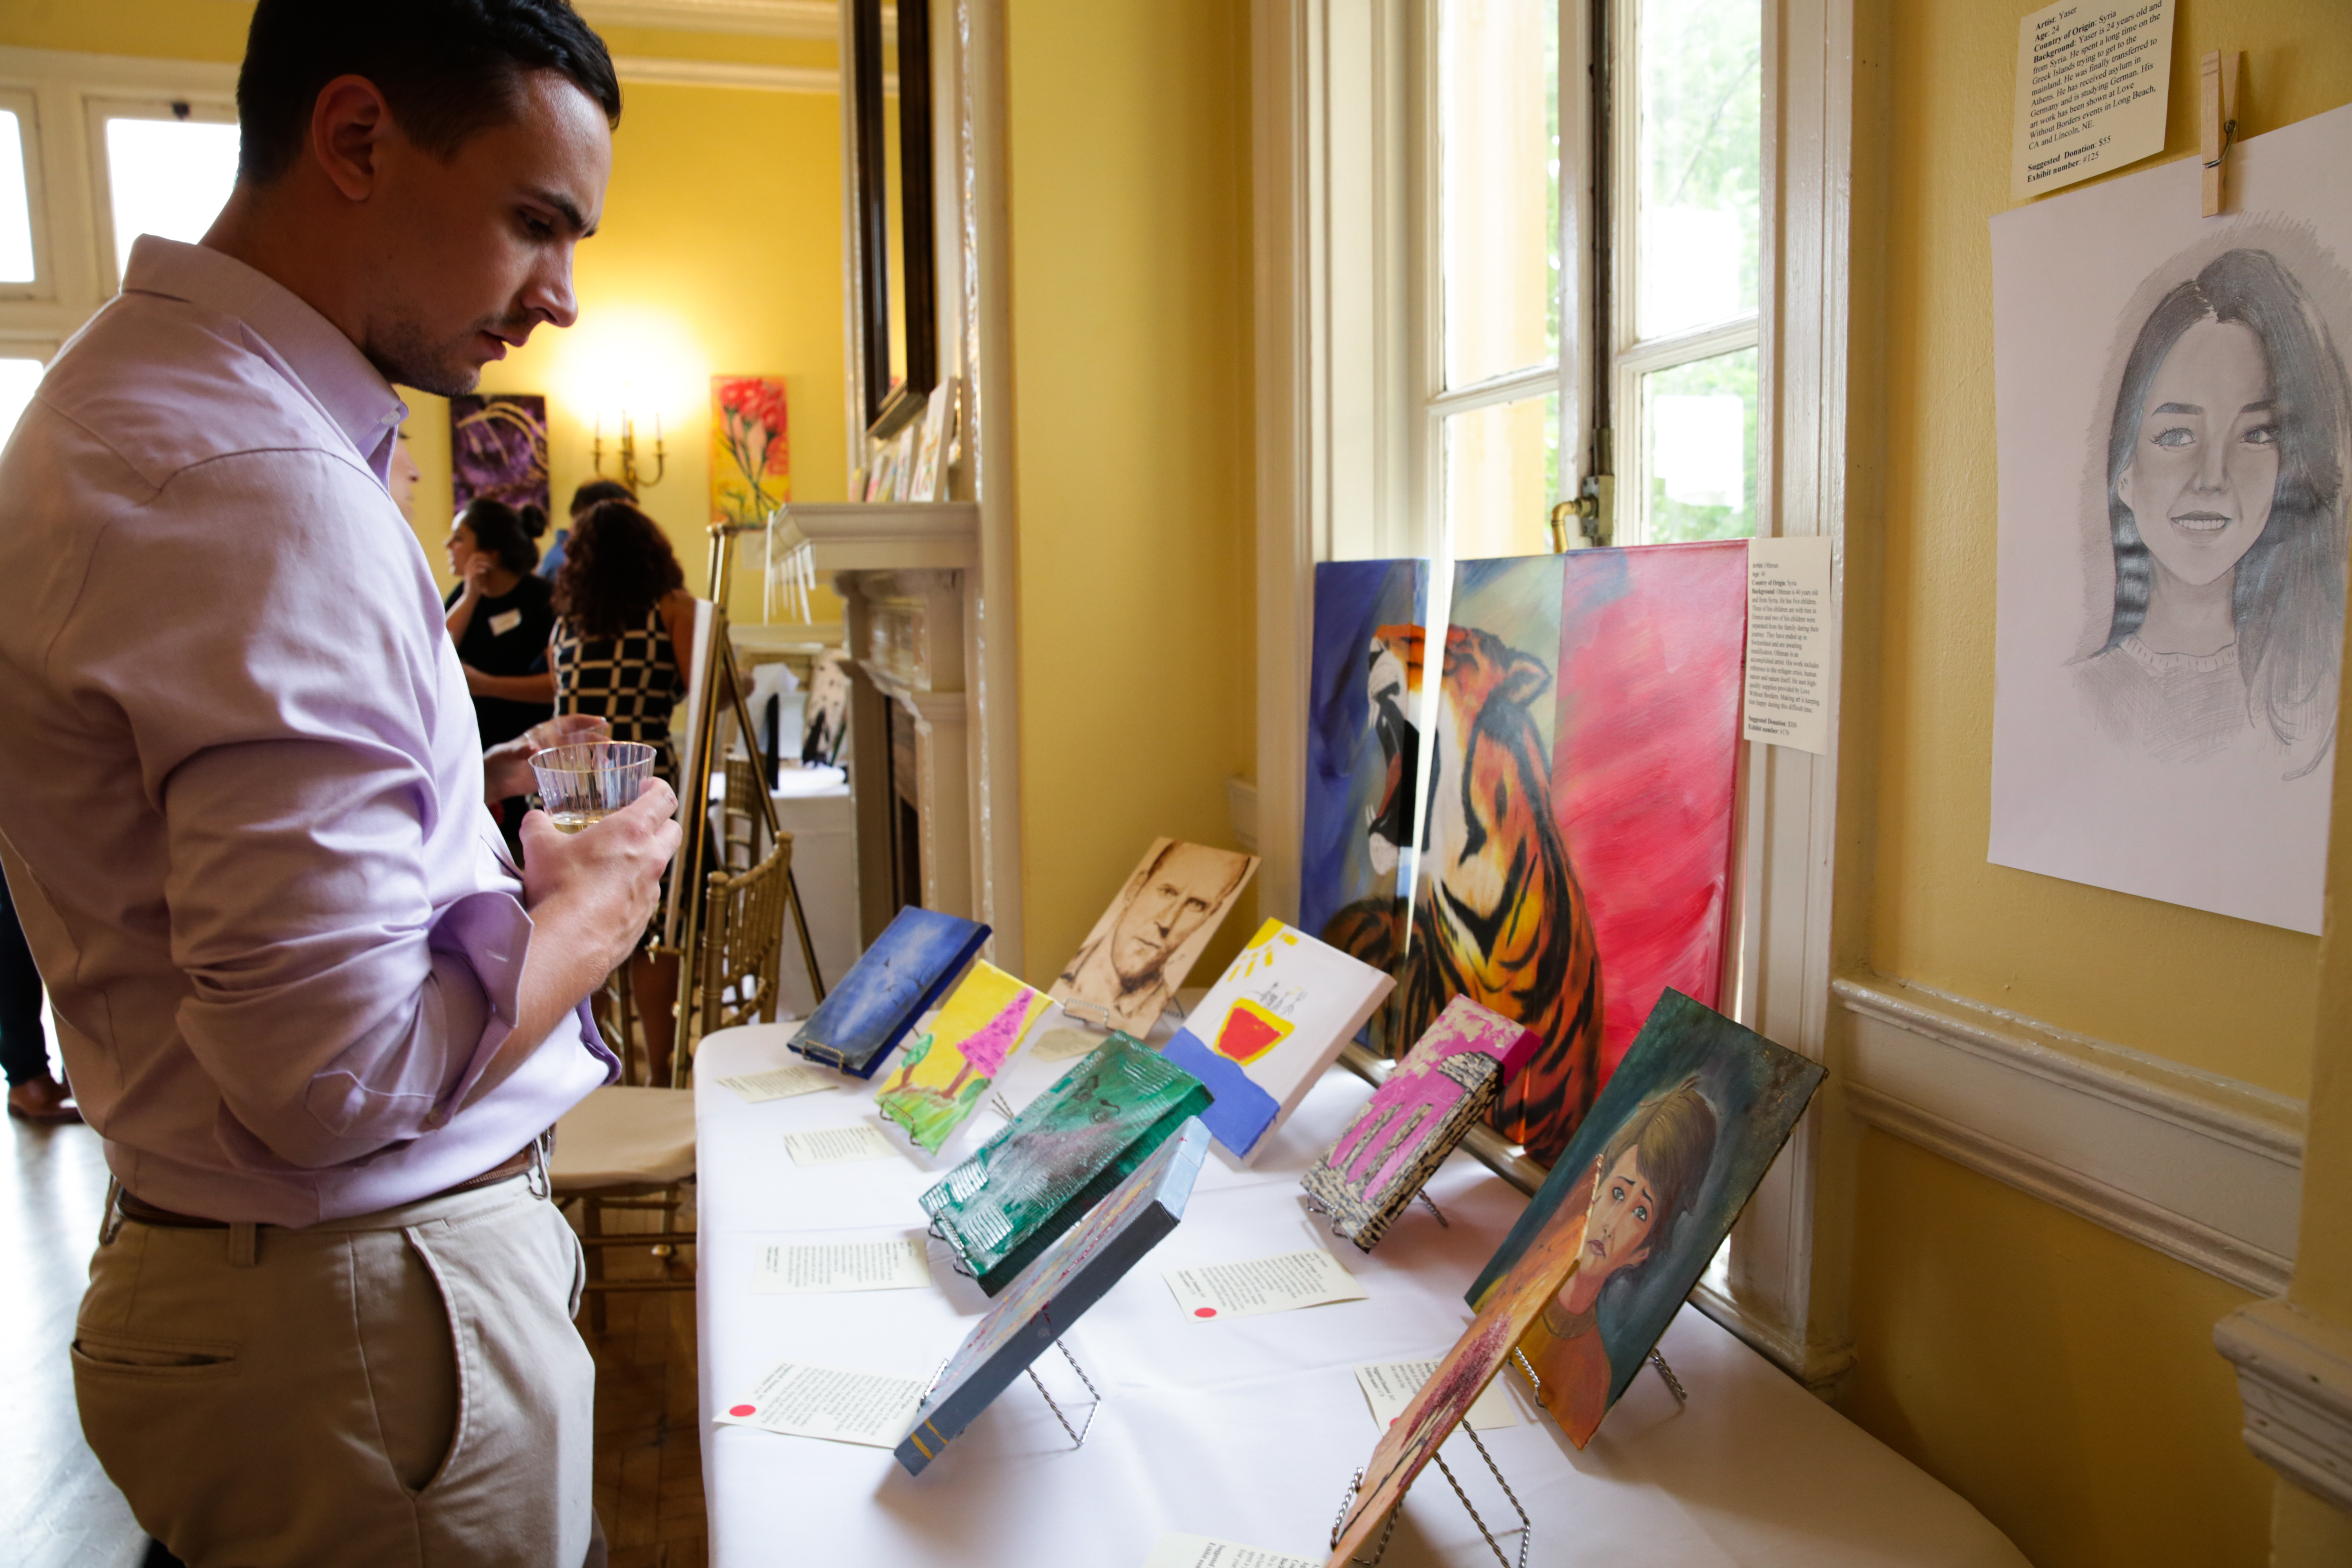 More than 150 pieces of art made by refugees from Greece were part of the collection at Love Without Borders - For Refugees' art show on Thurs., Sept. 16 in Washington D.C. (N. Papadogiannakis/VOA)